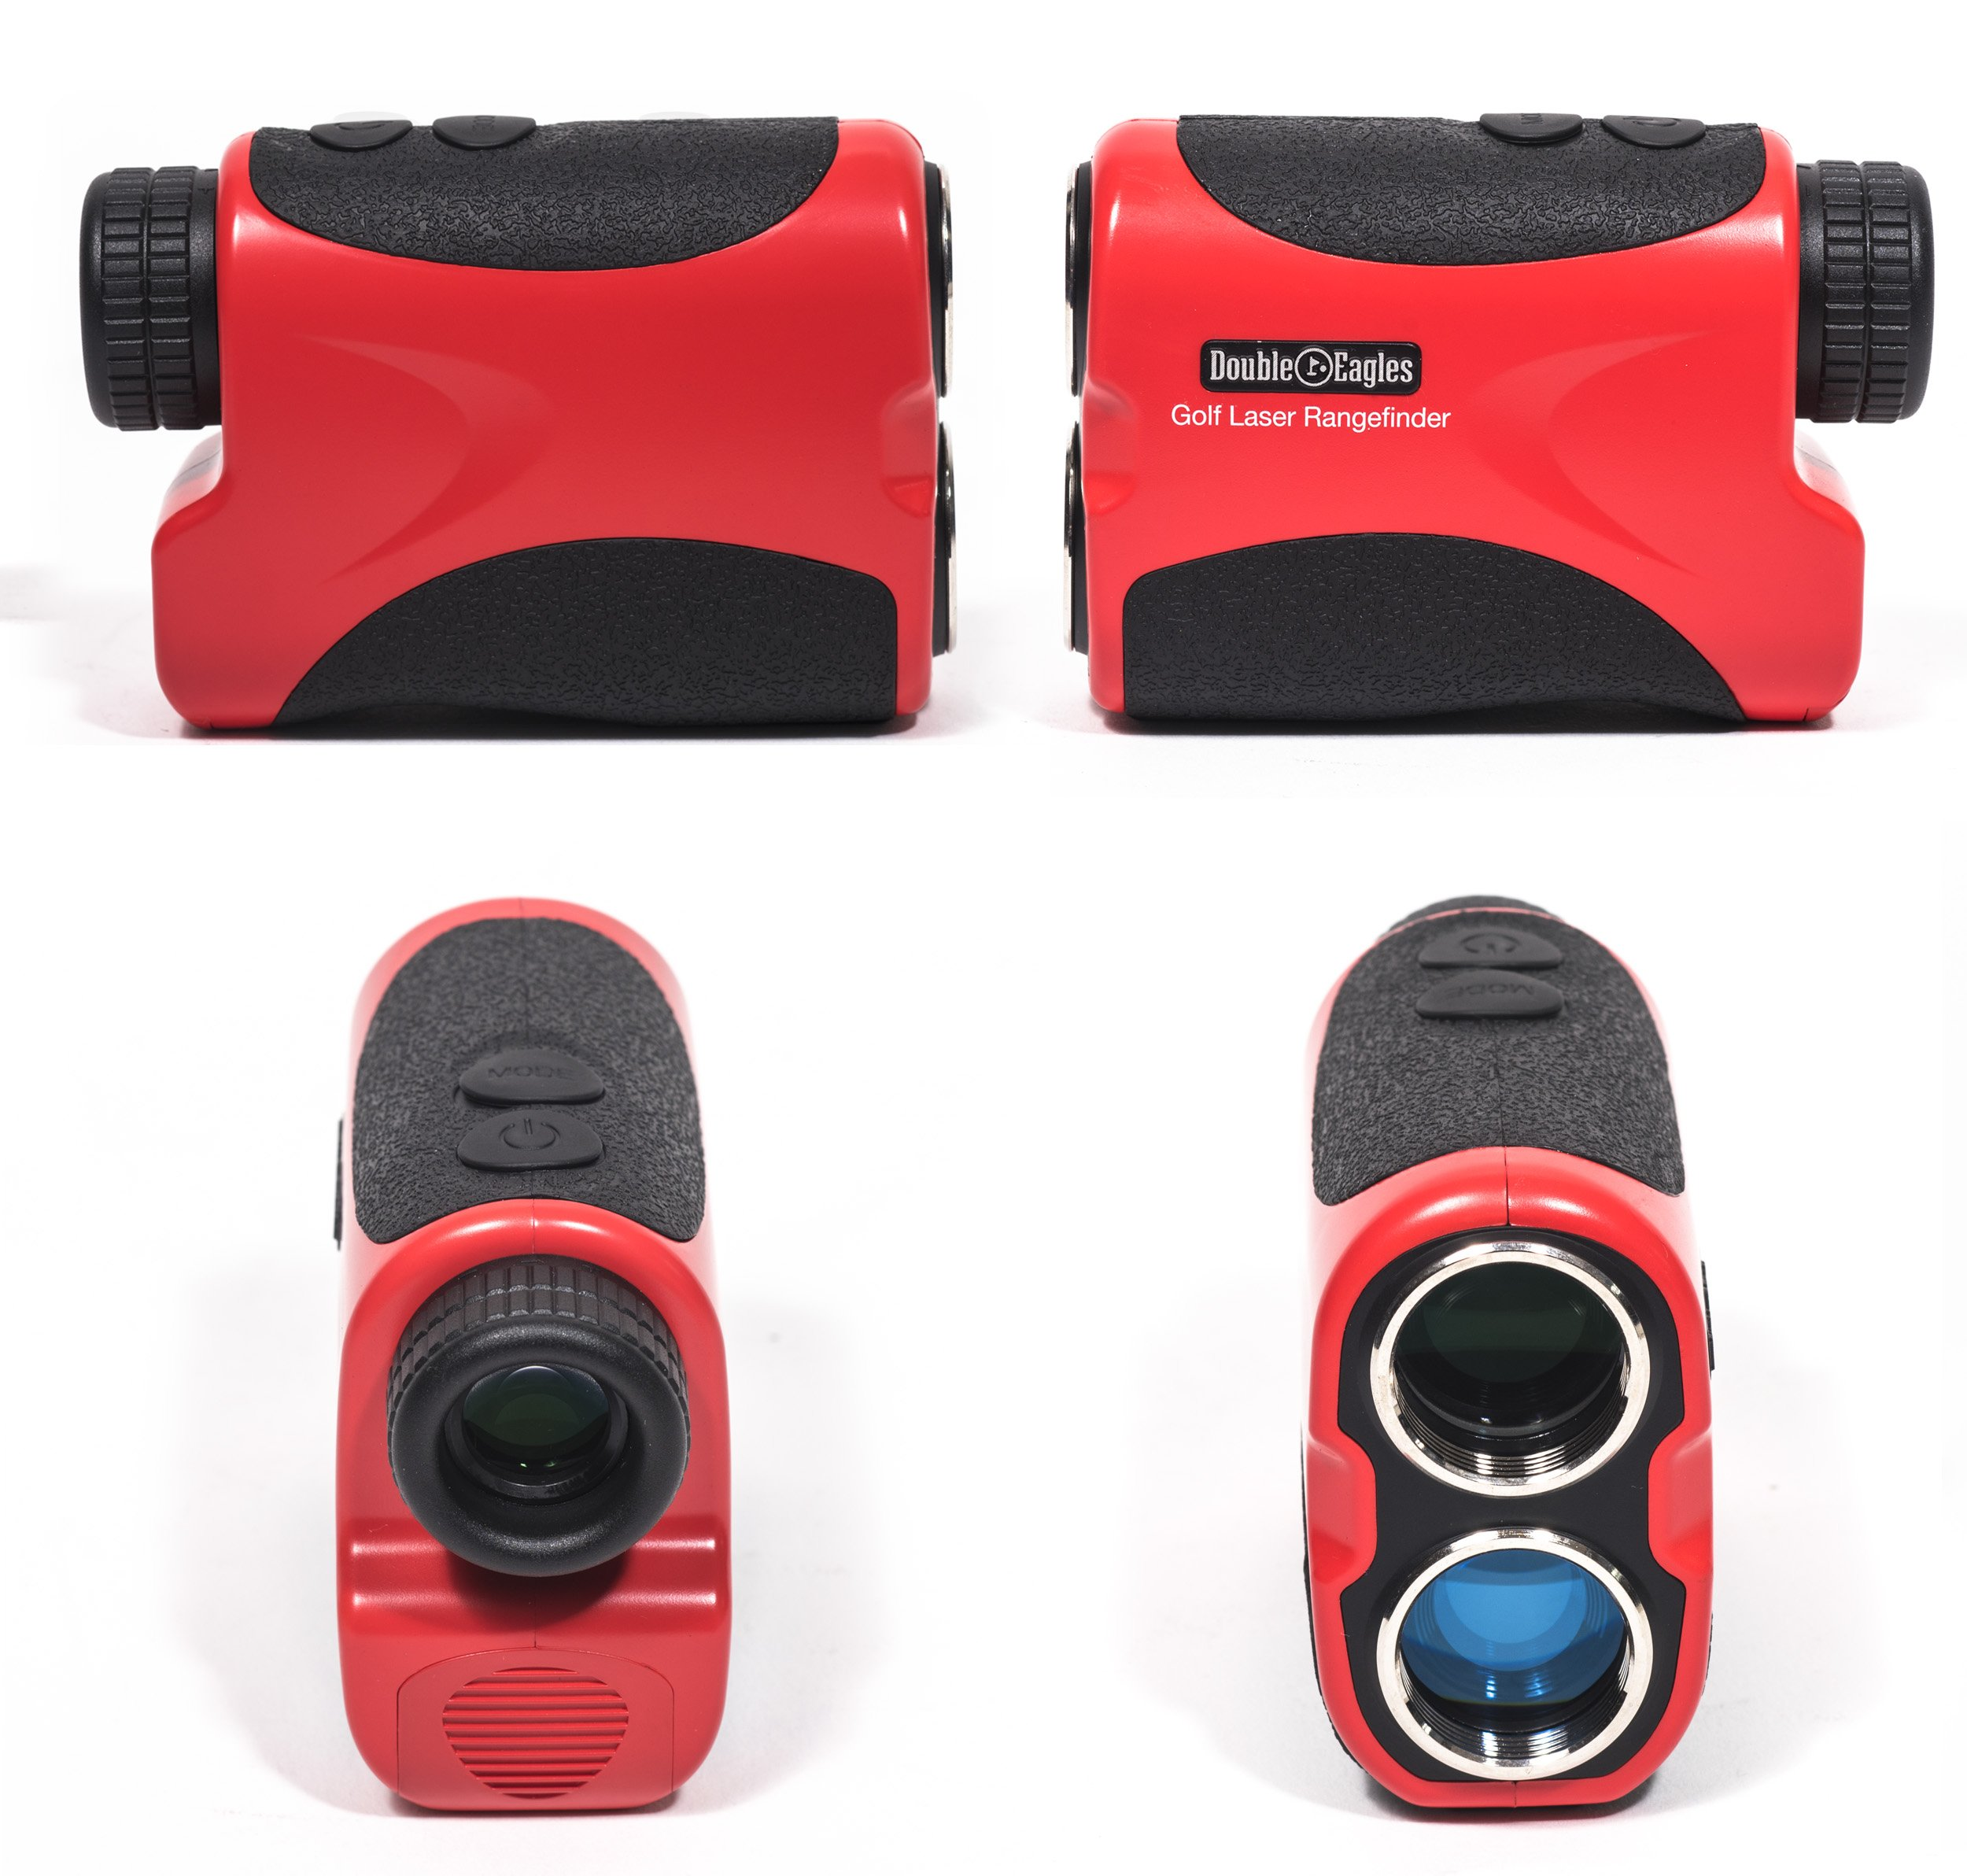 Kozyvacu Double Eagles Depro-600 Golf Laser Range Finder With Pin Sensor, Laser Binoculars, Free Battery, Water Proof by Kozyvacu (Image #3)